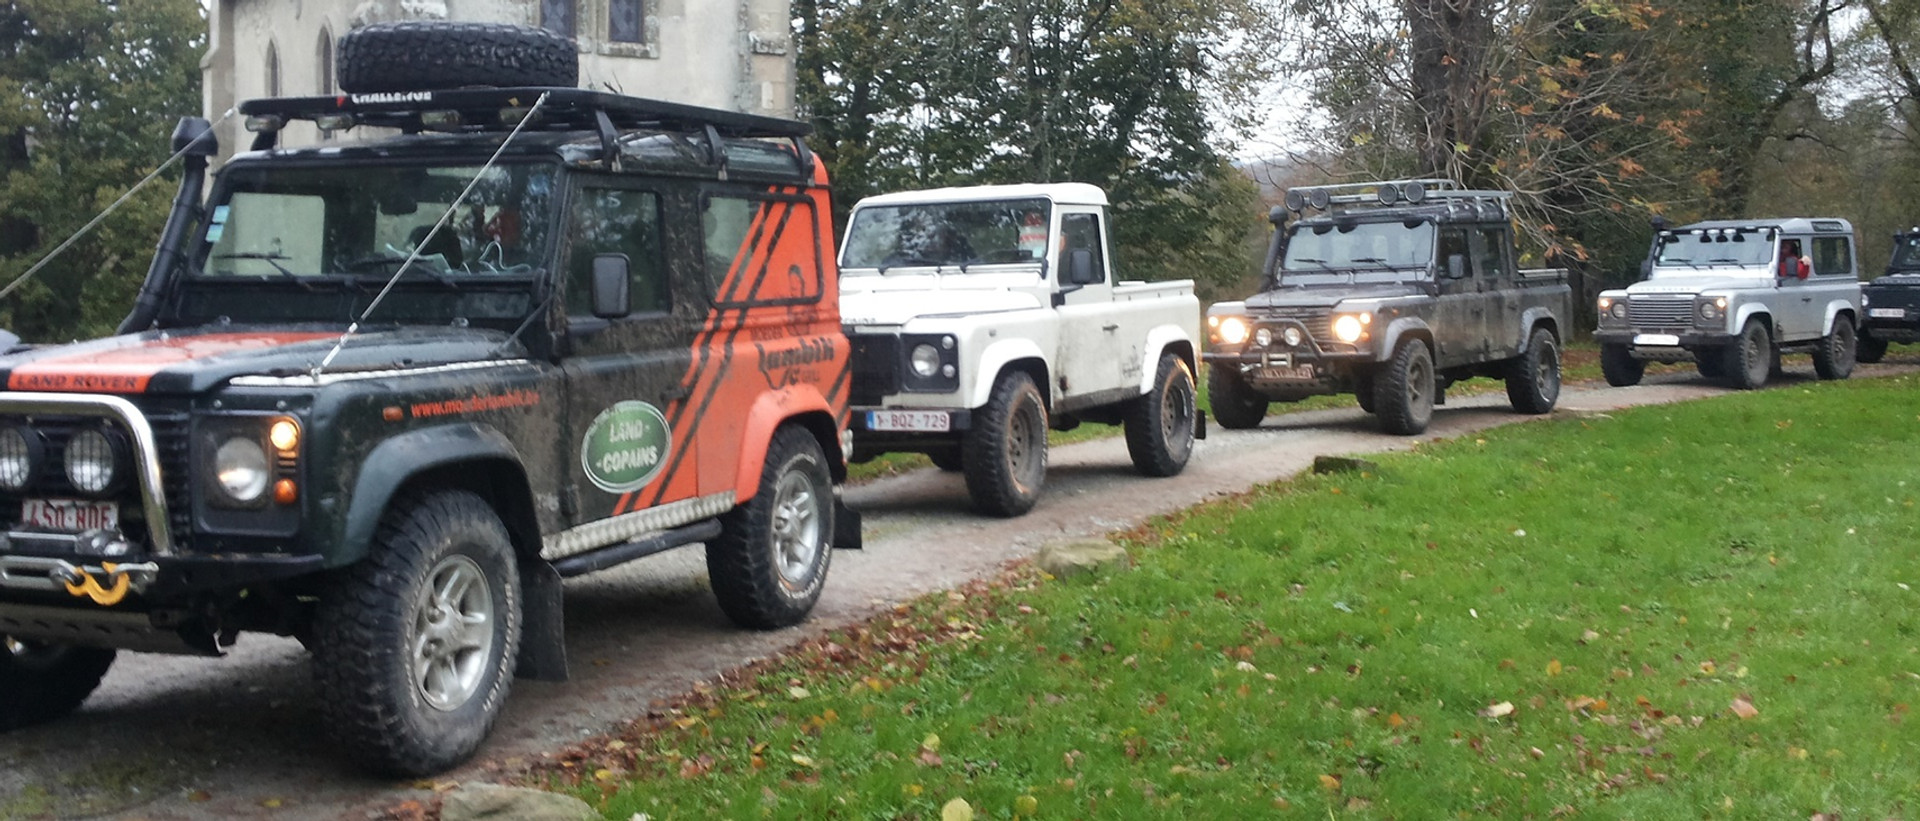 THIS BELGIAN LAND ROVER CLUB